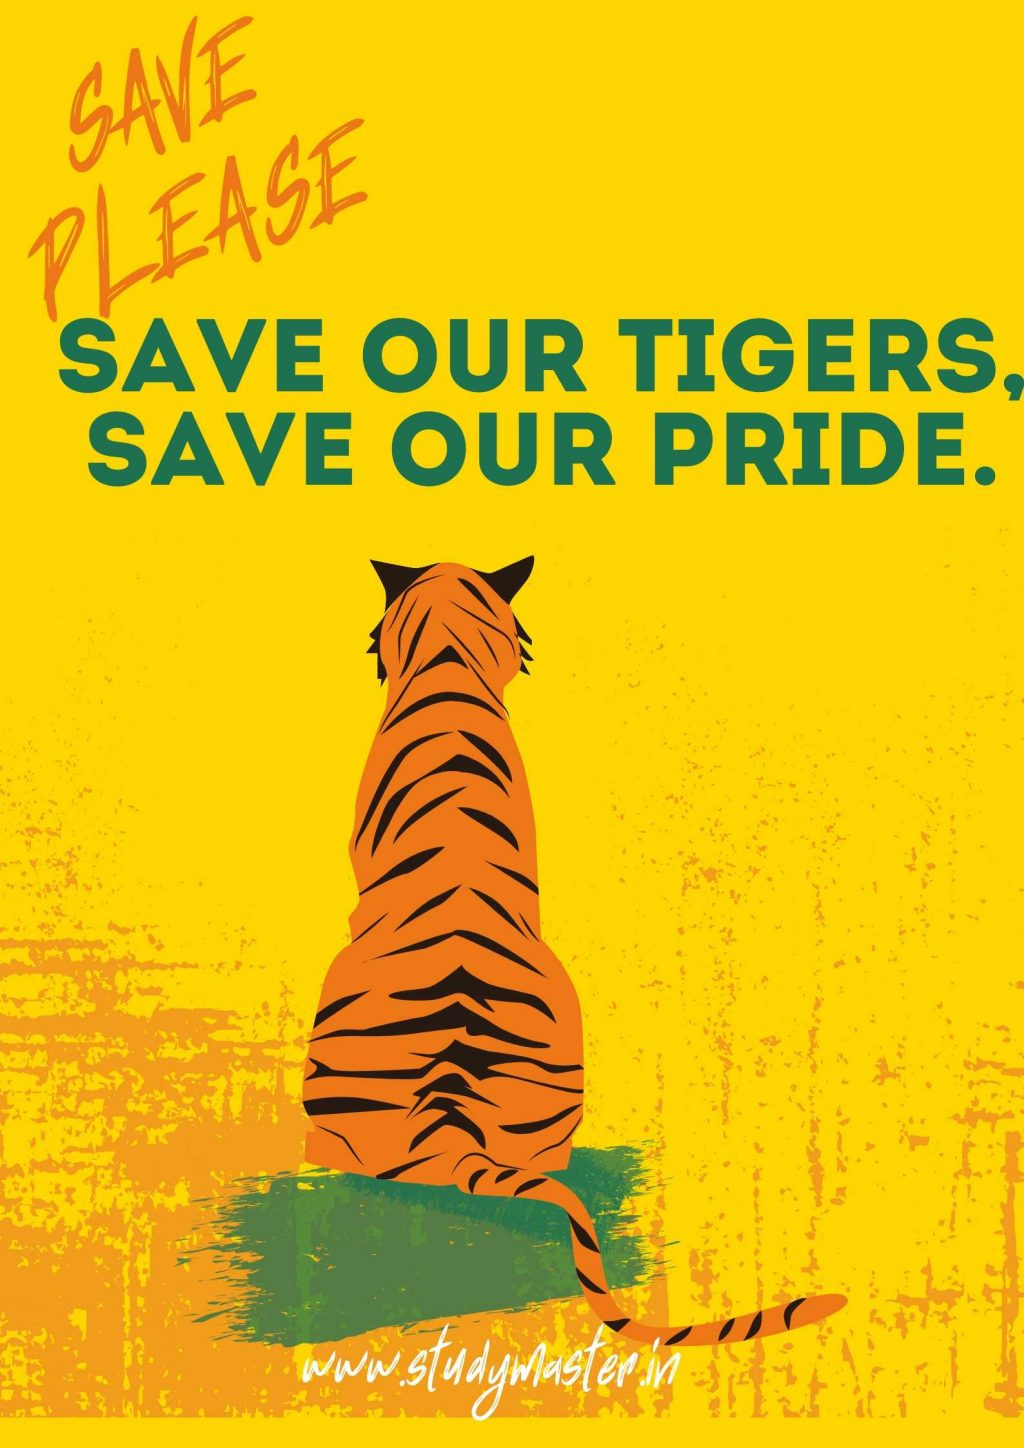 poster on save animals with slogan